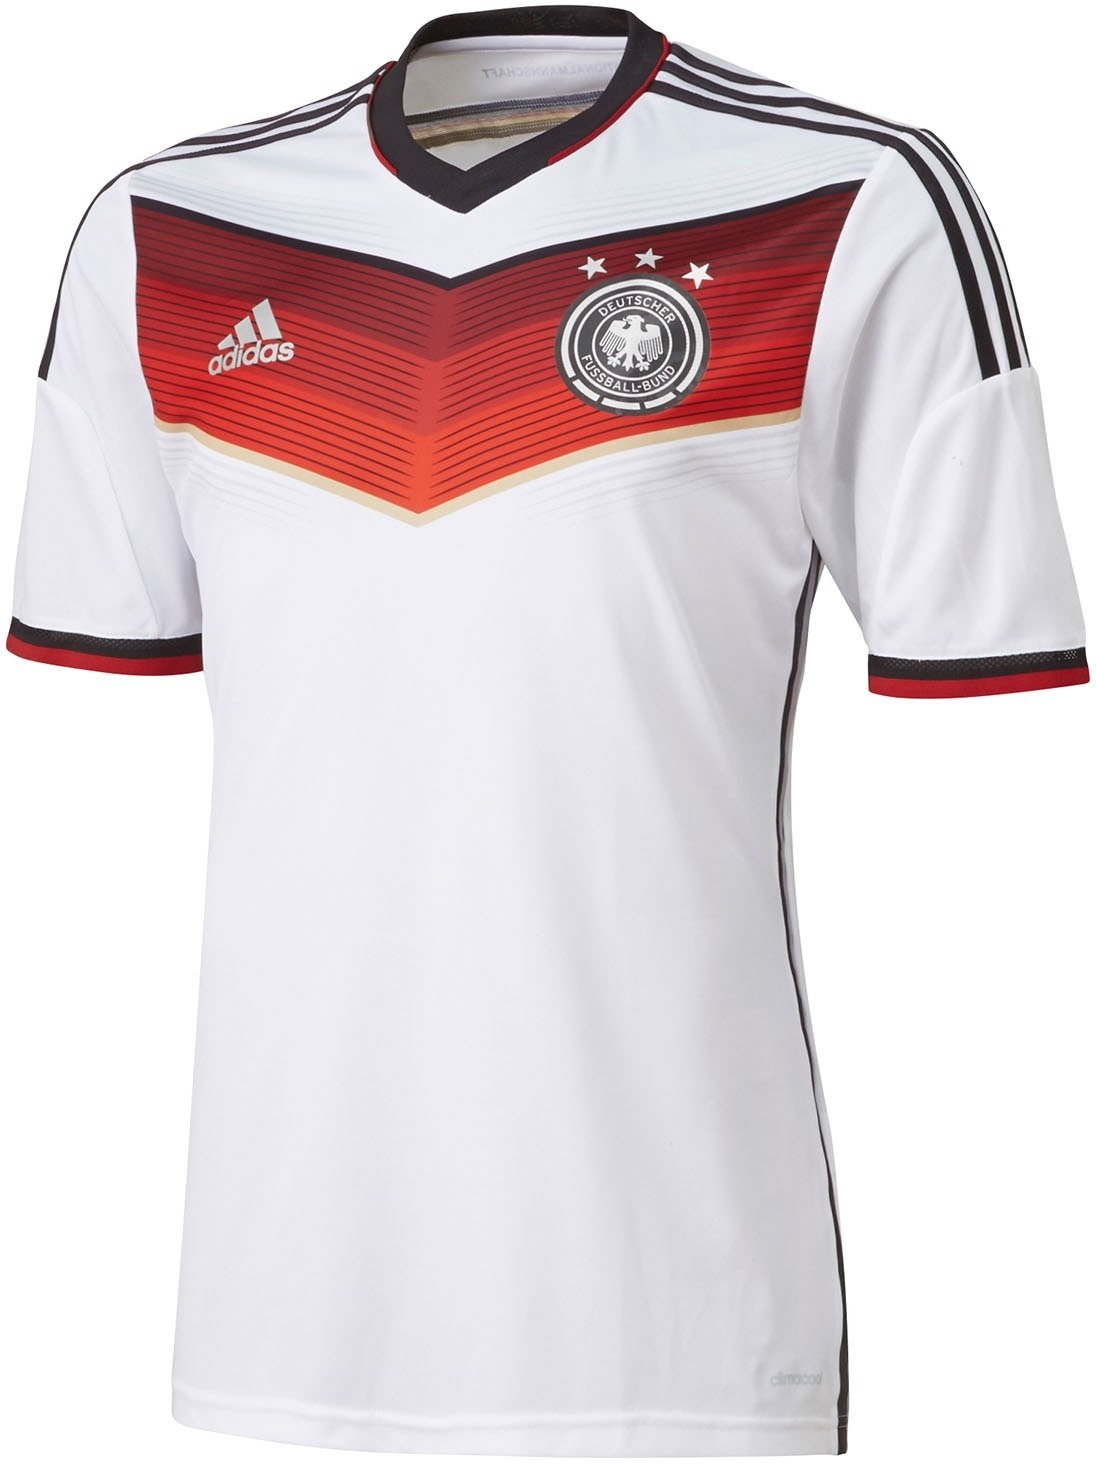 Germany World Cup 2014 Soccer Jersey